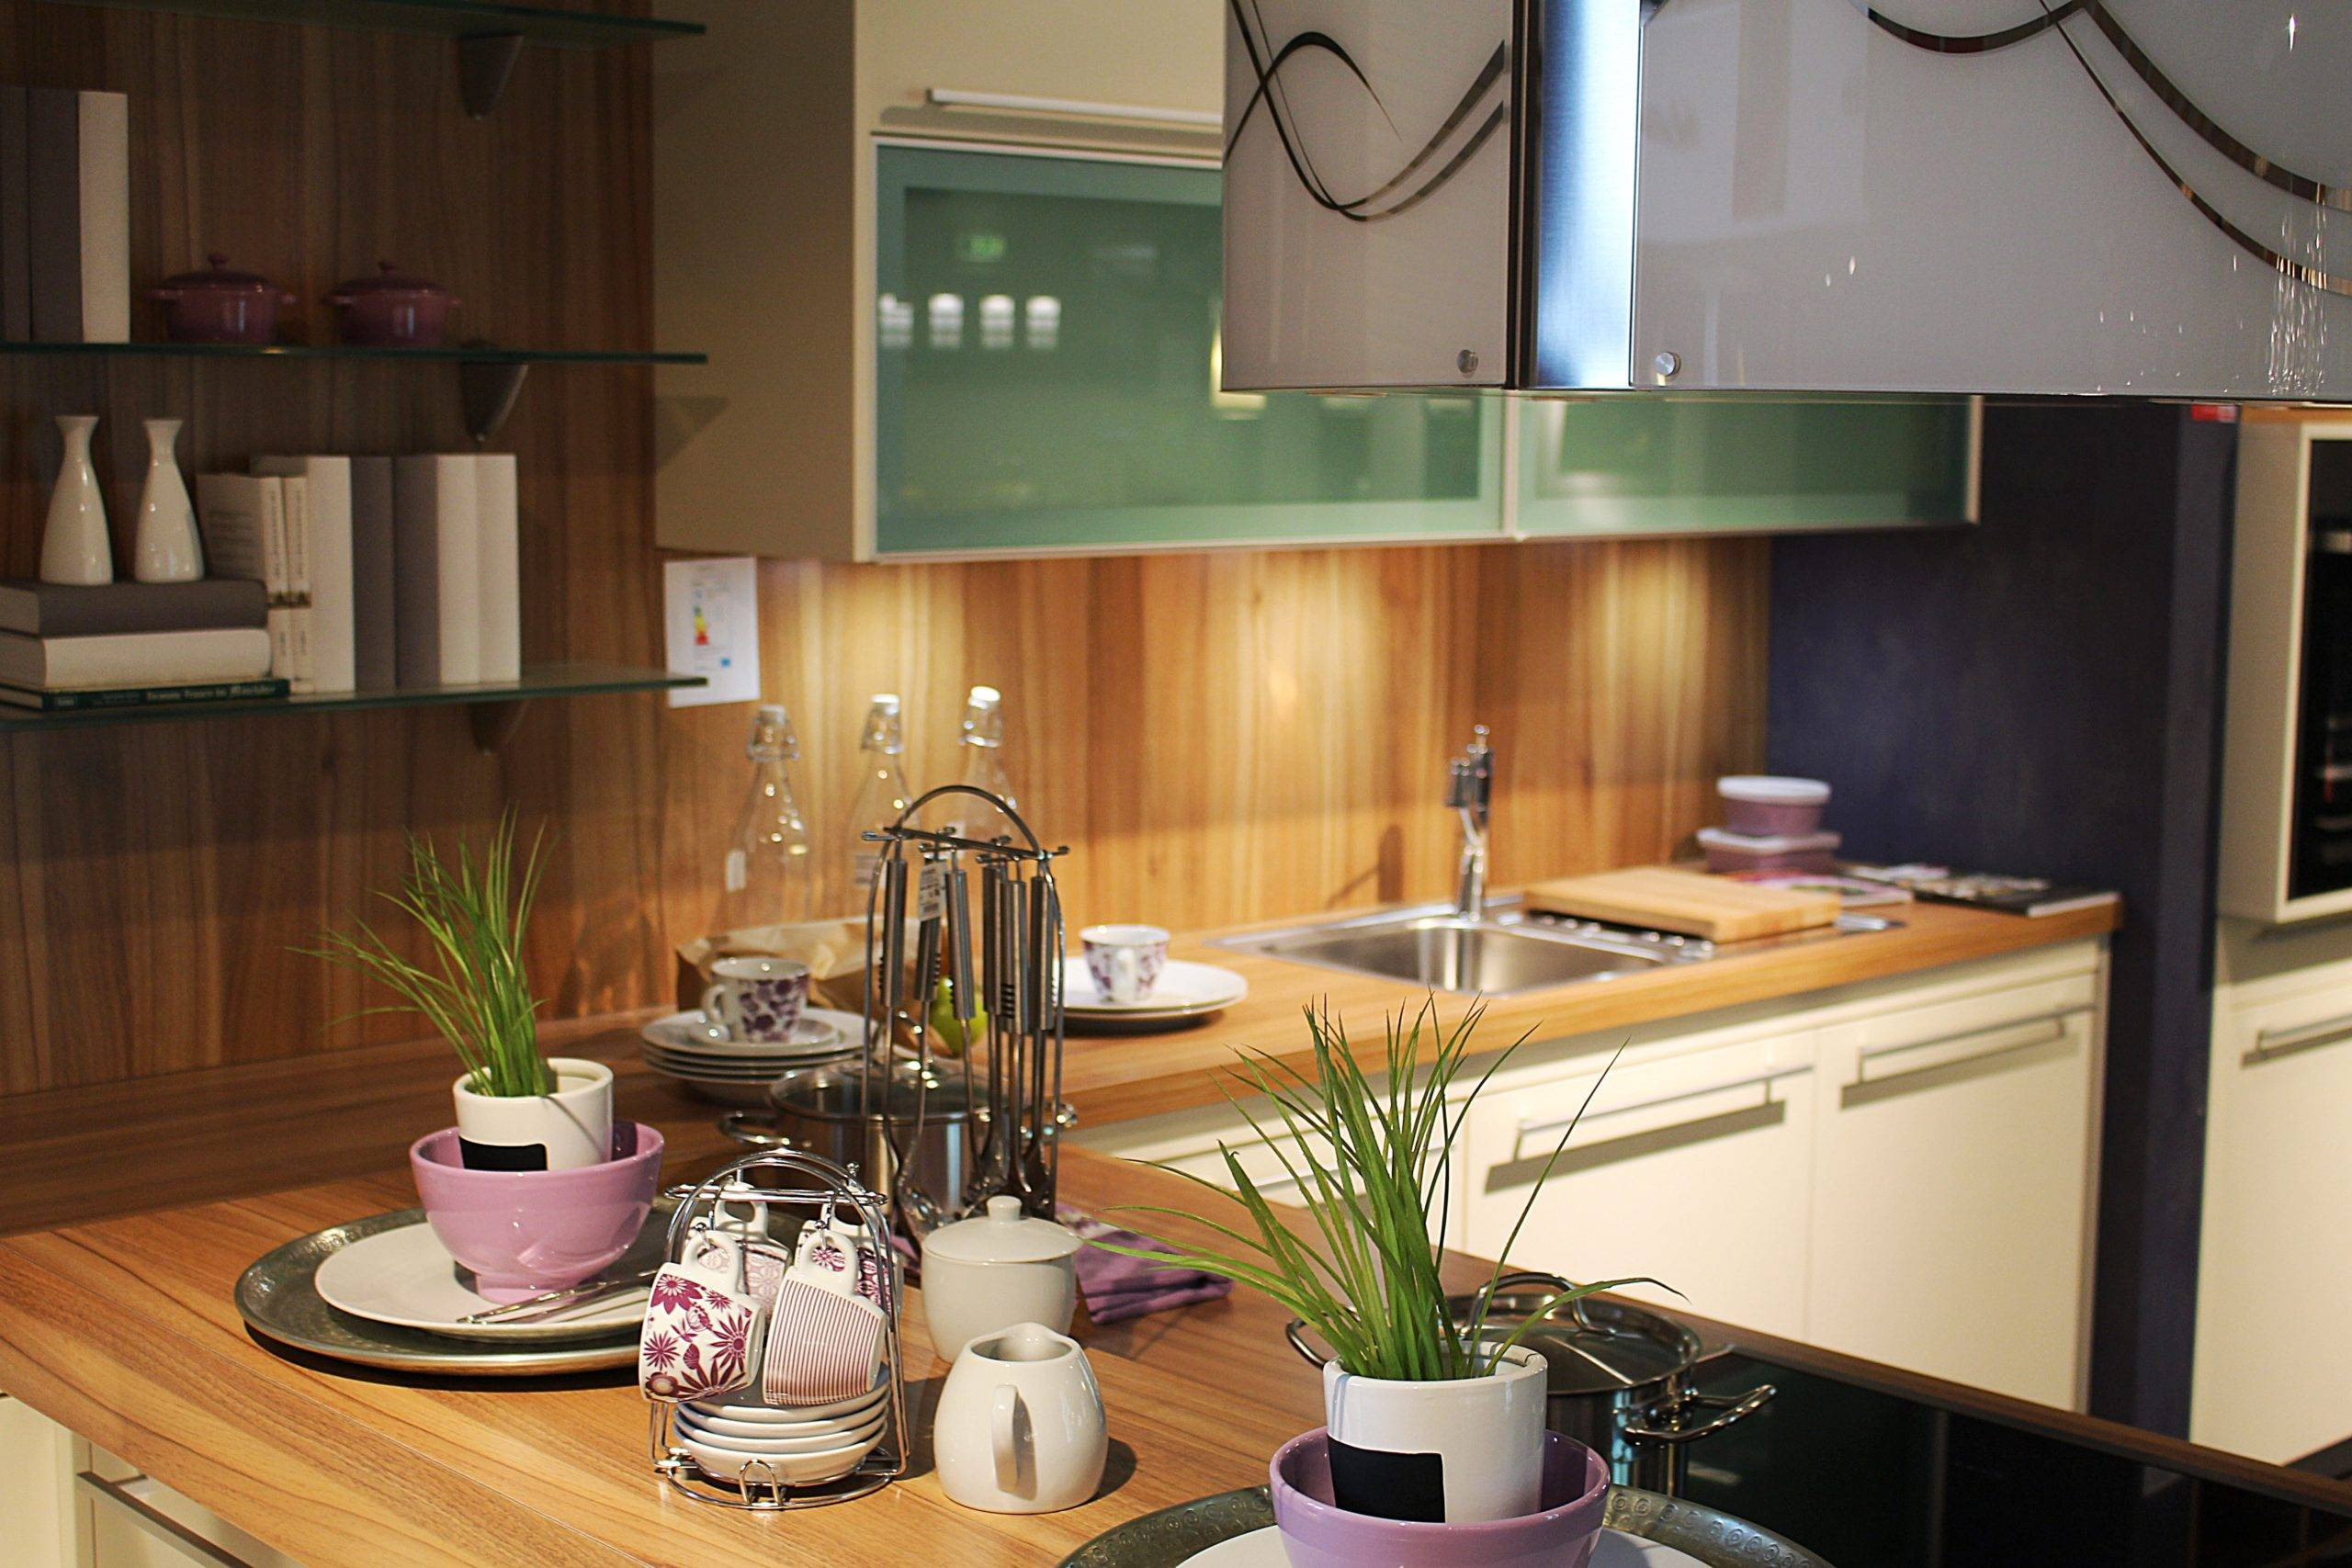 KItchenware on counter with two potted plants